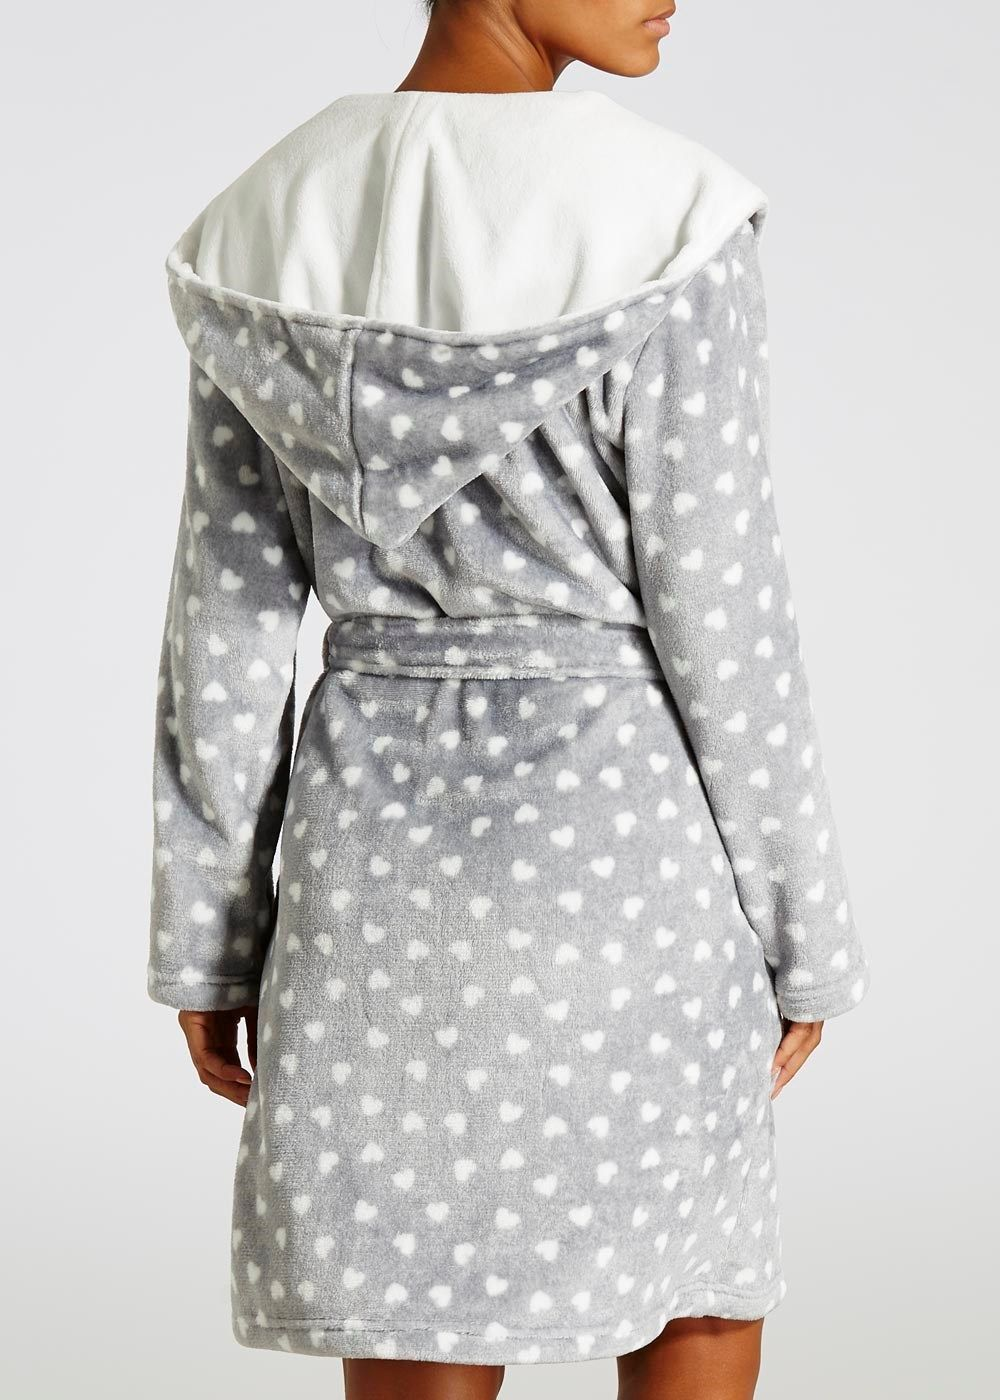 Heart Hooded Dressing Gown | Nightwear | Pinterest | Gowns and Shopping